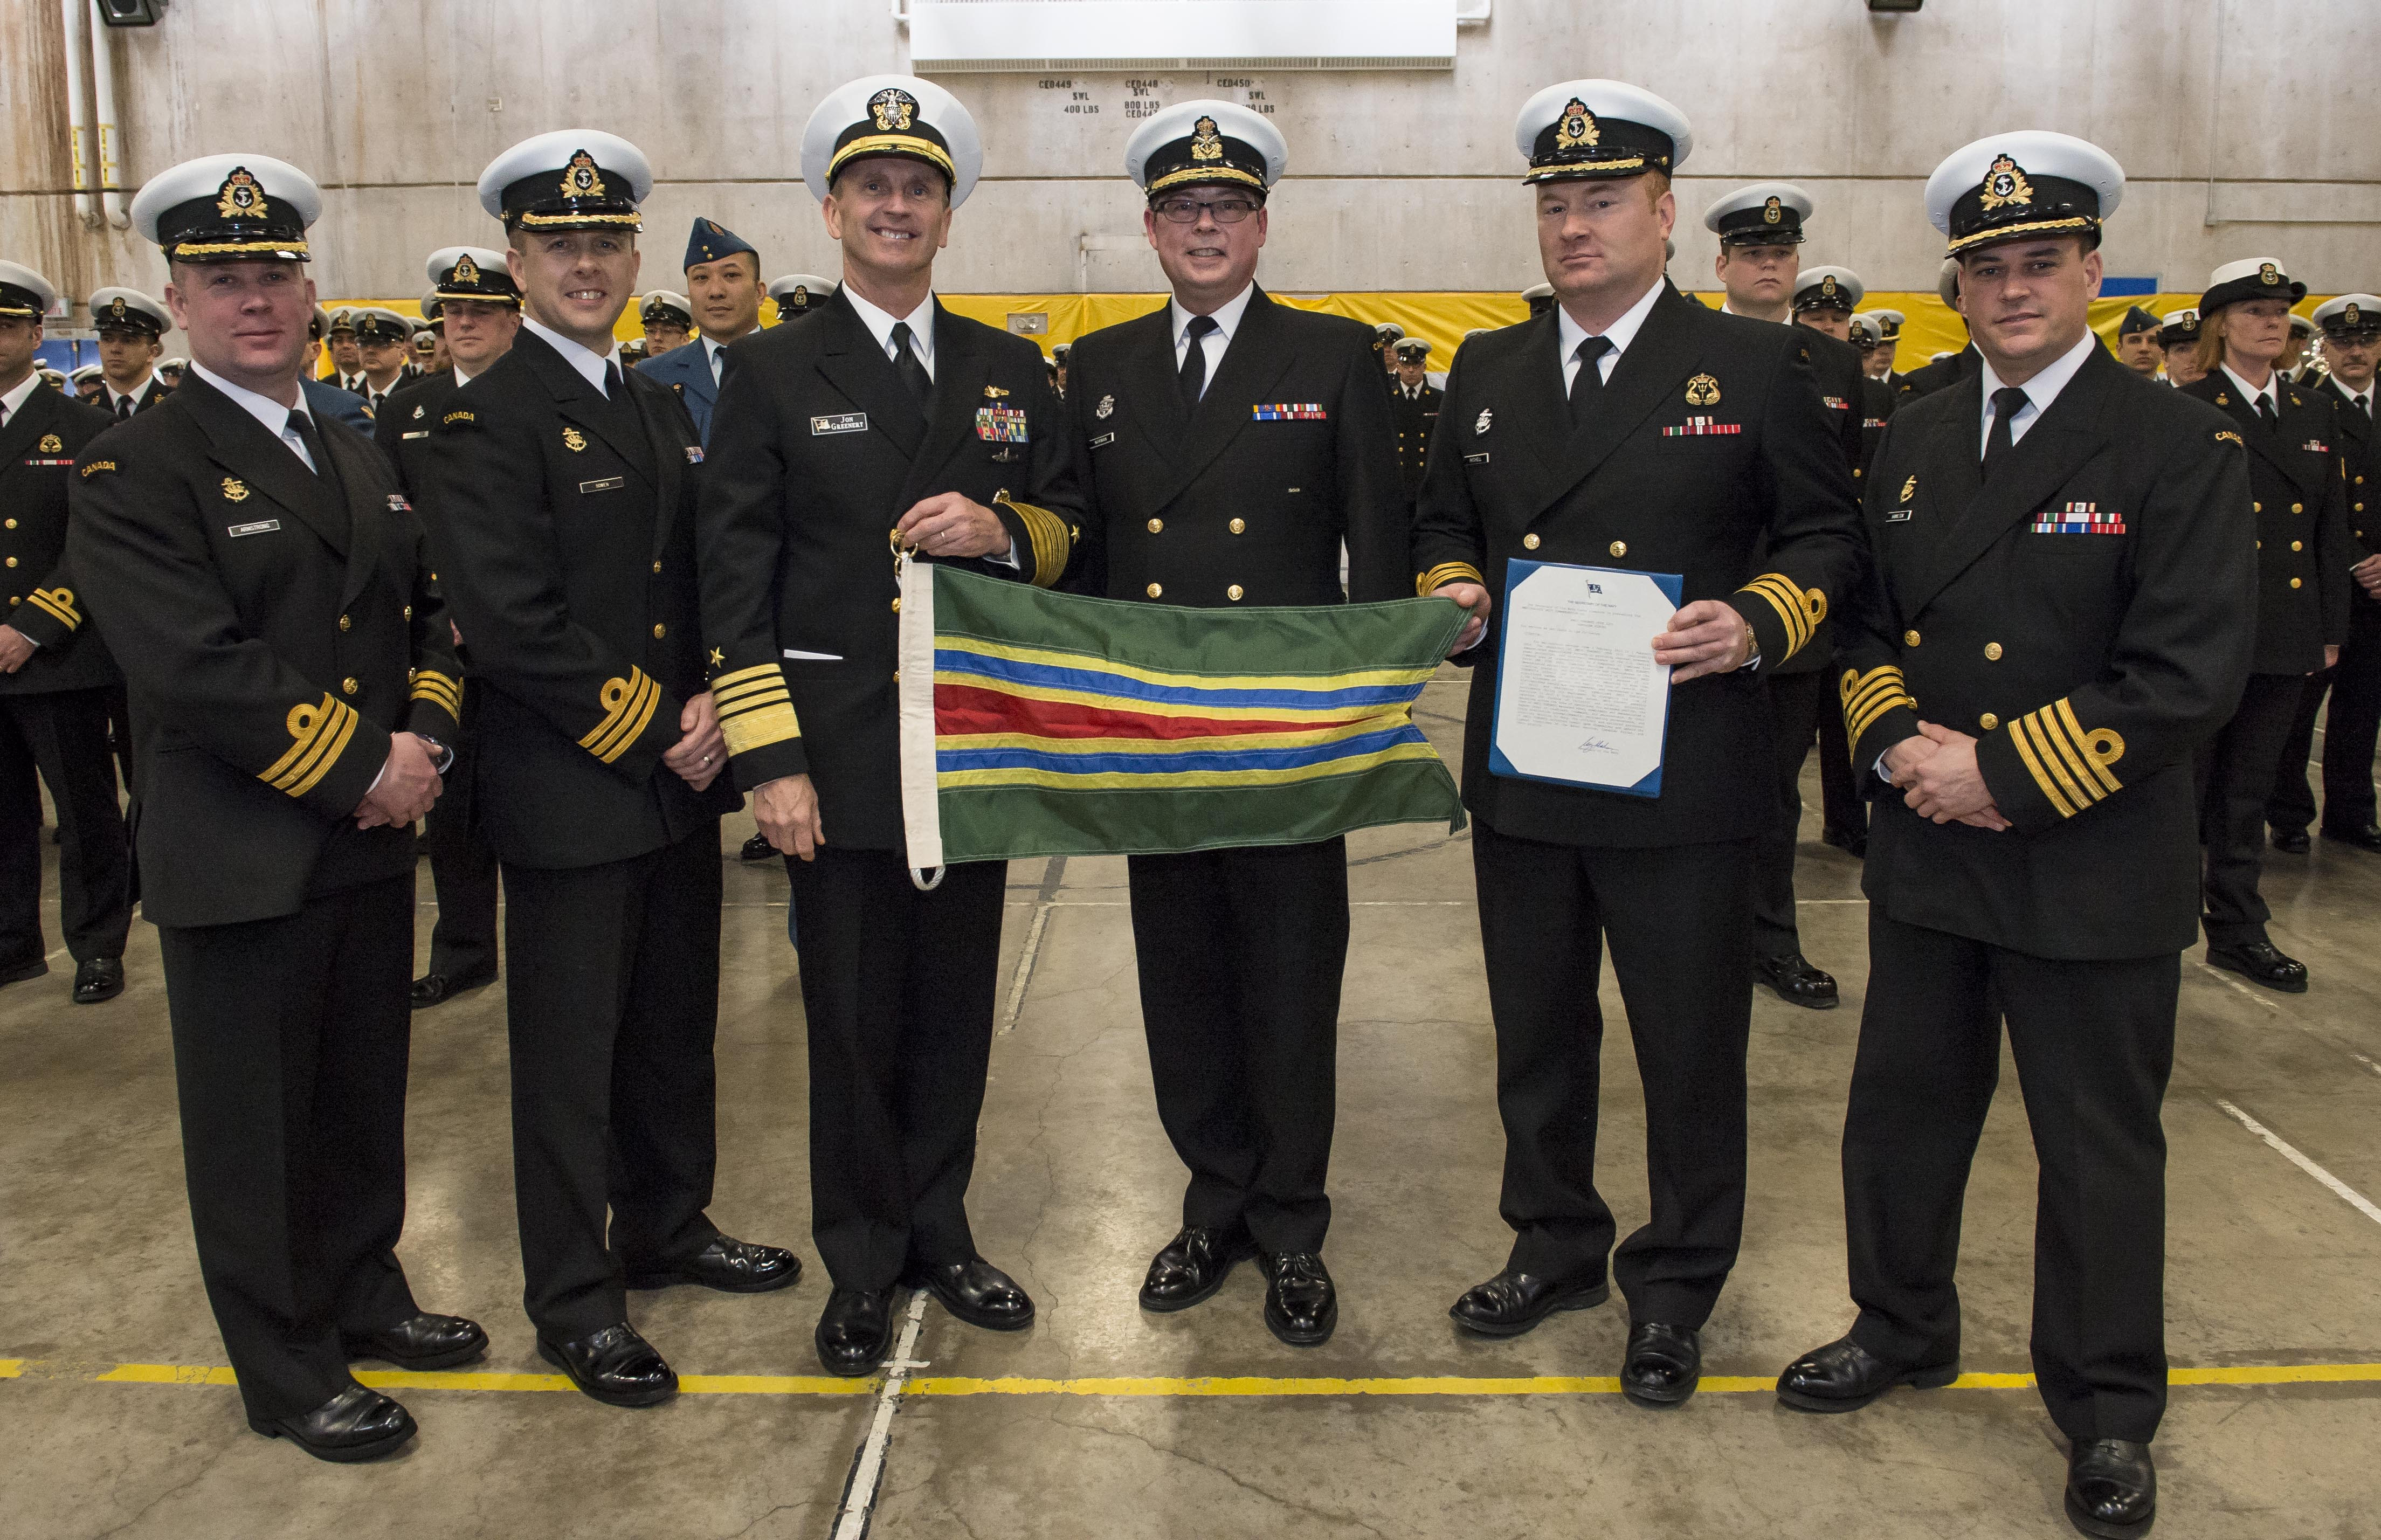 The United States Navy awards Her Majesty's Canadian Ship (HMCS) TORONTO the Meritorious Unit Commendation